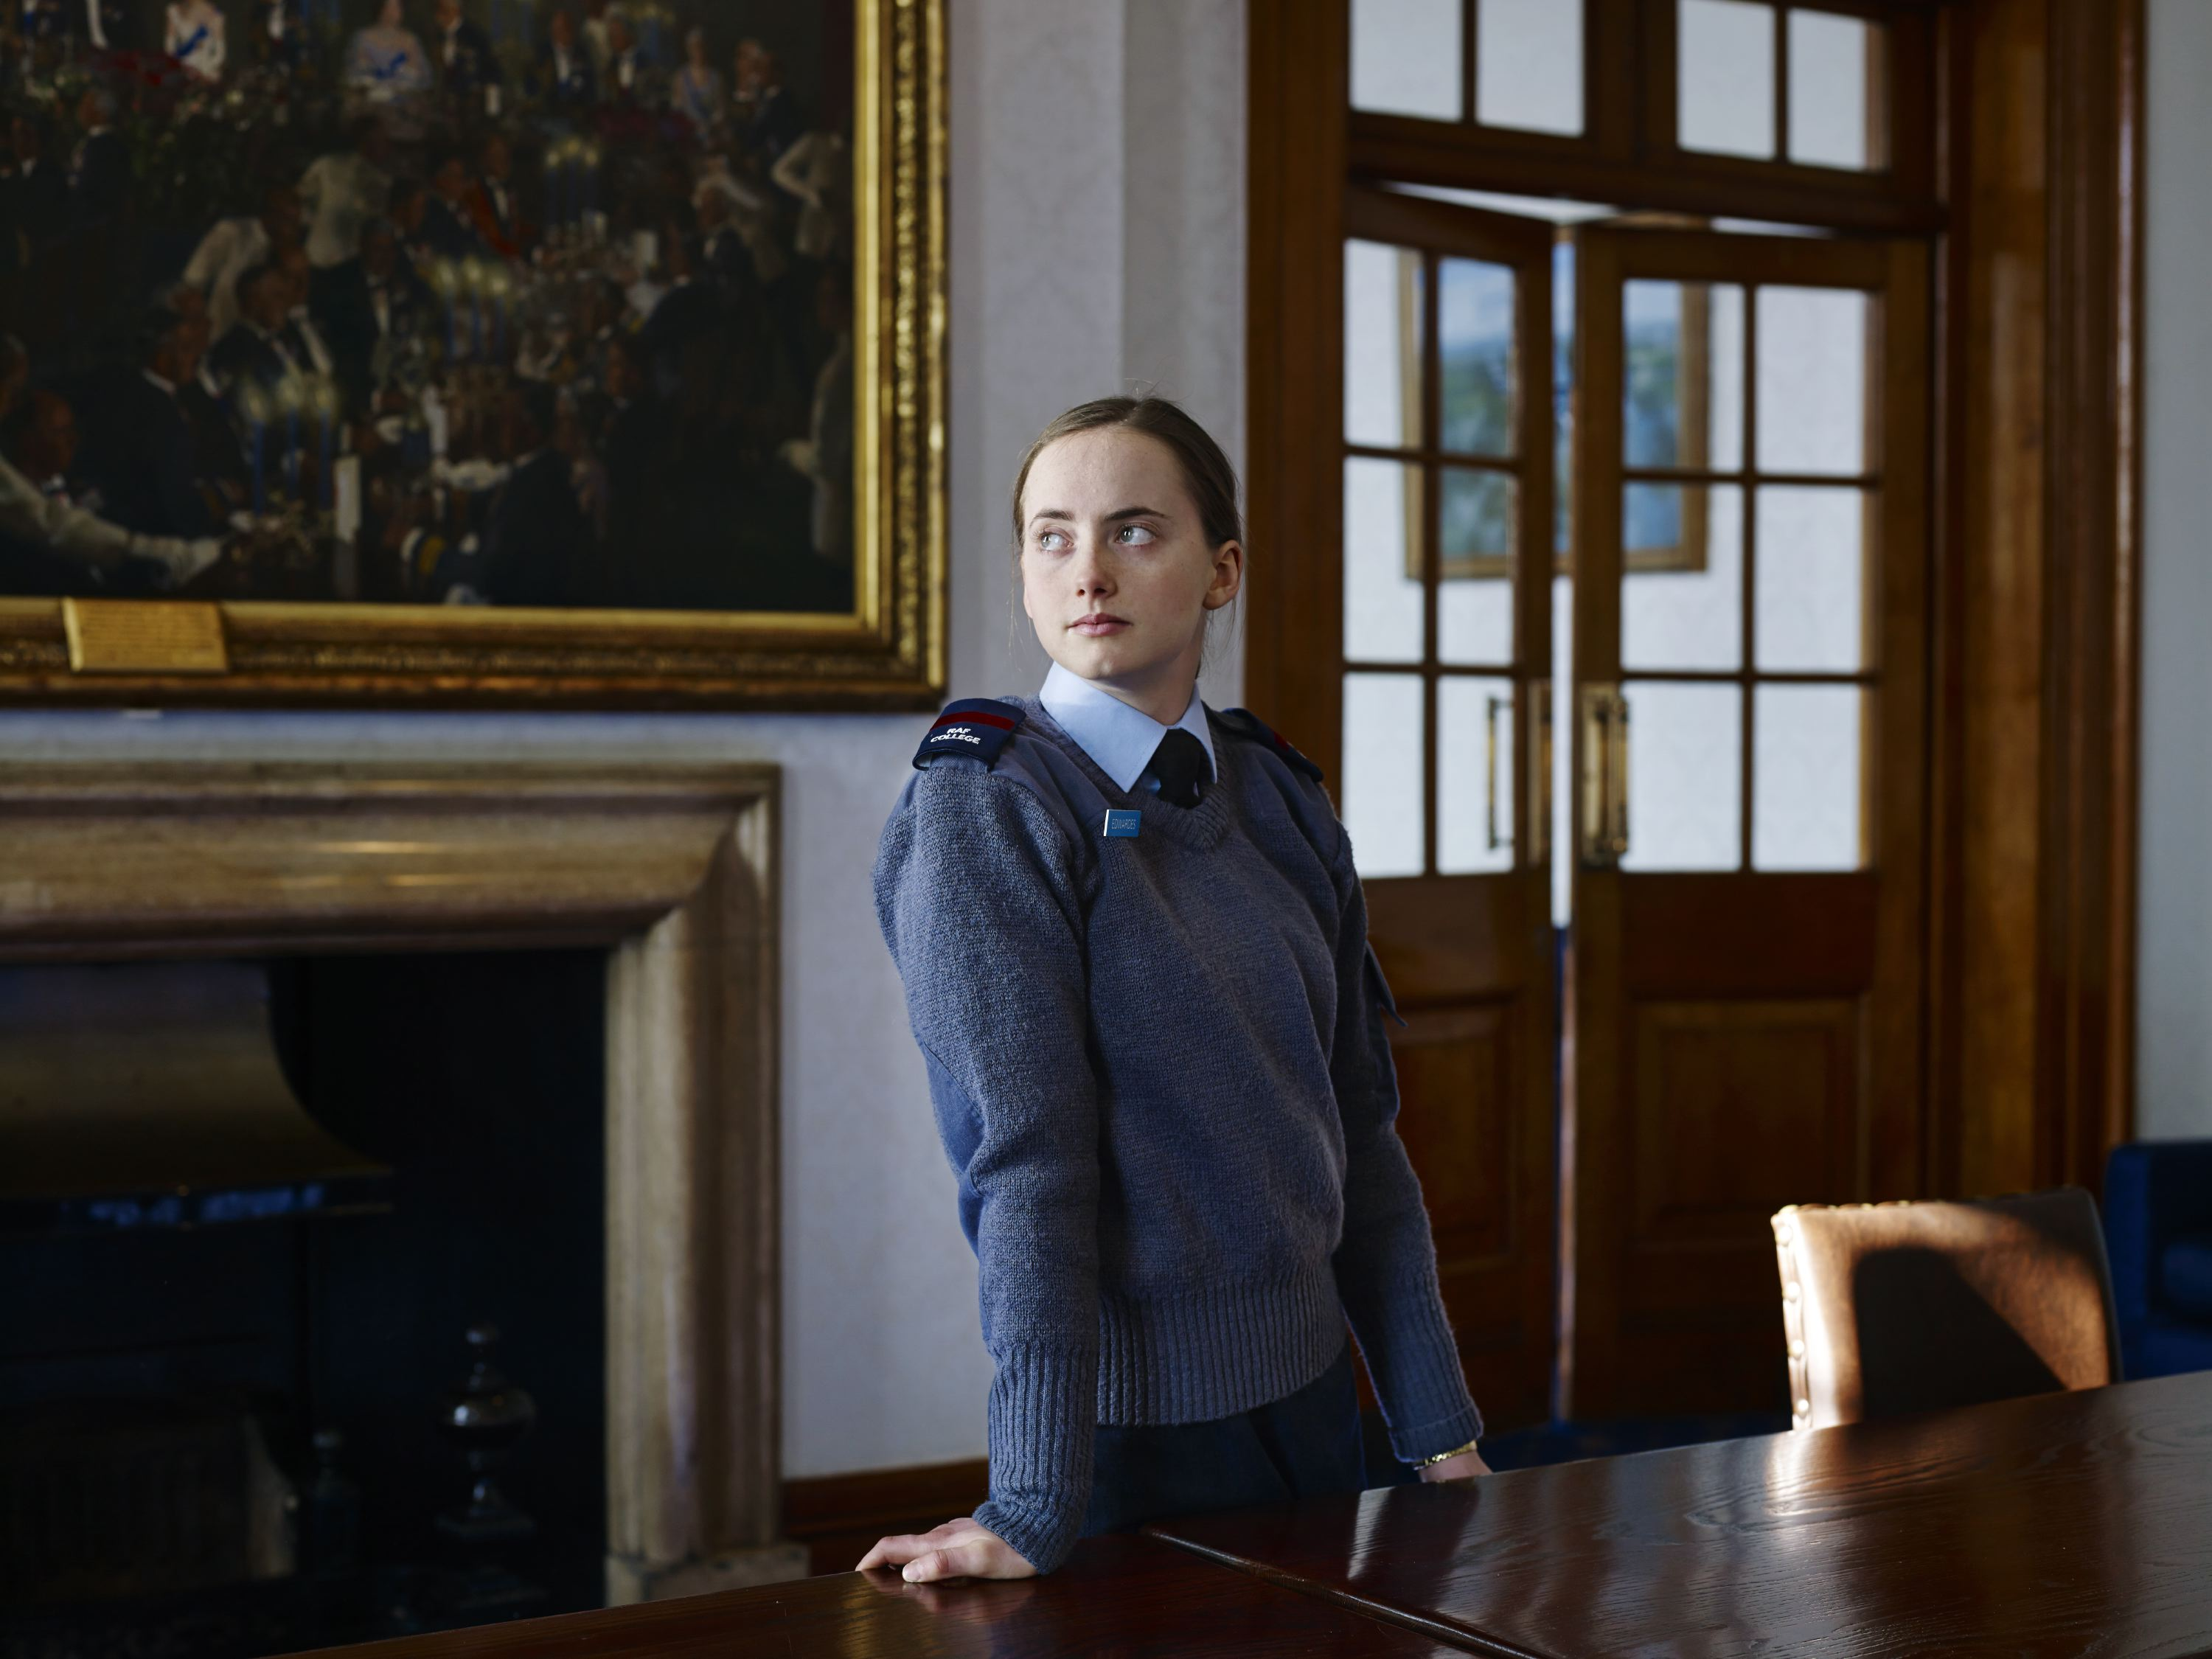 Cadet Edwardes at The Royal Air Force's Cranwell College, Lincolnshire, U.K., March, 03, 2014.